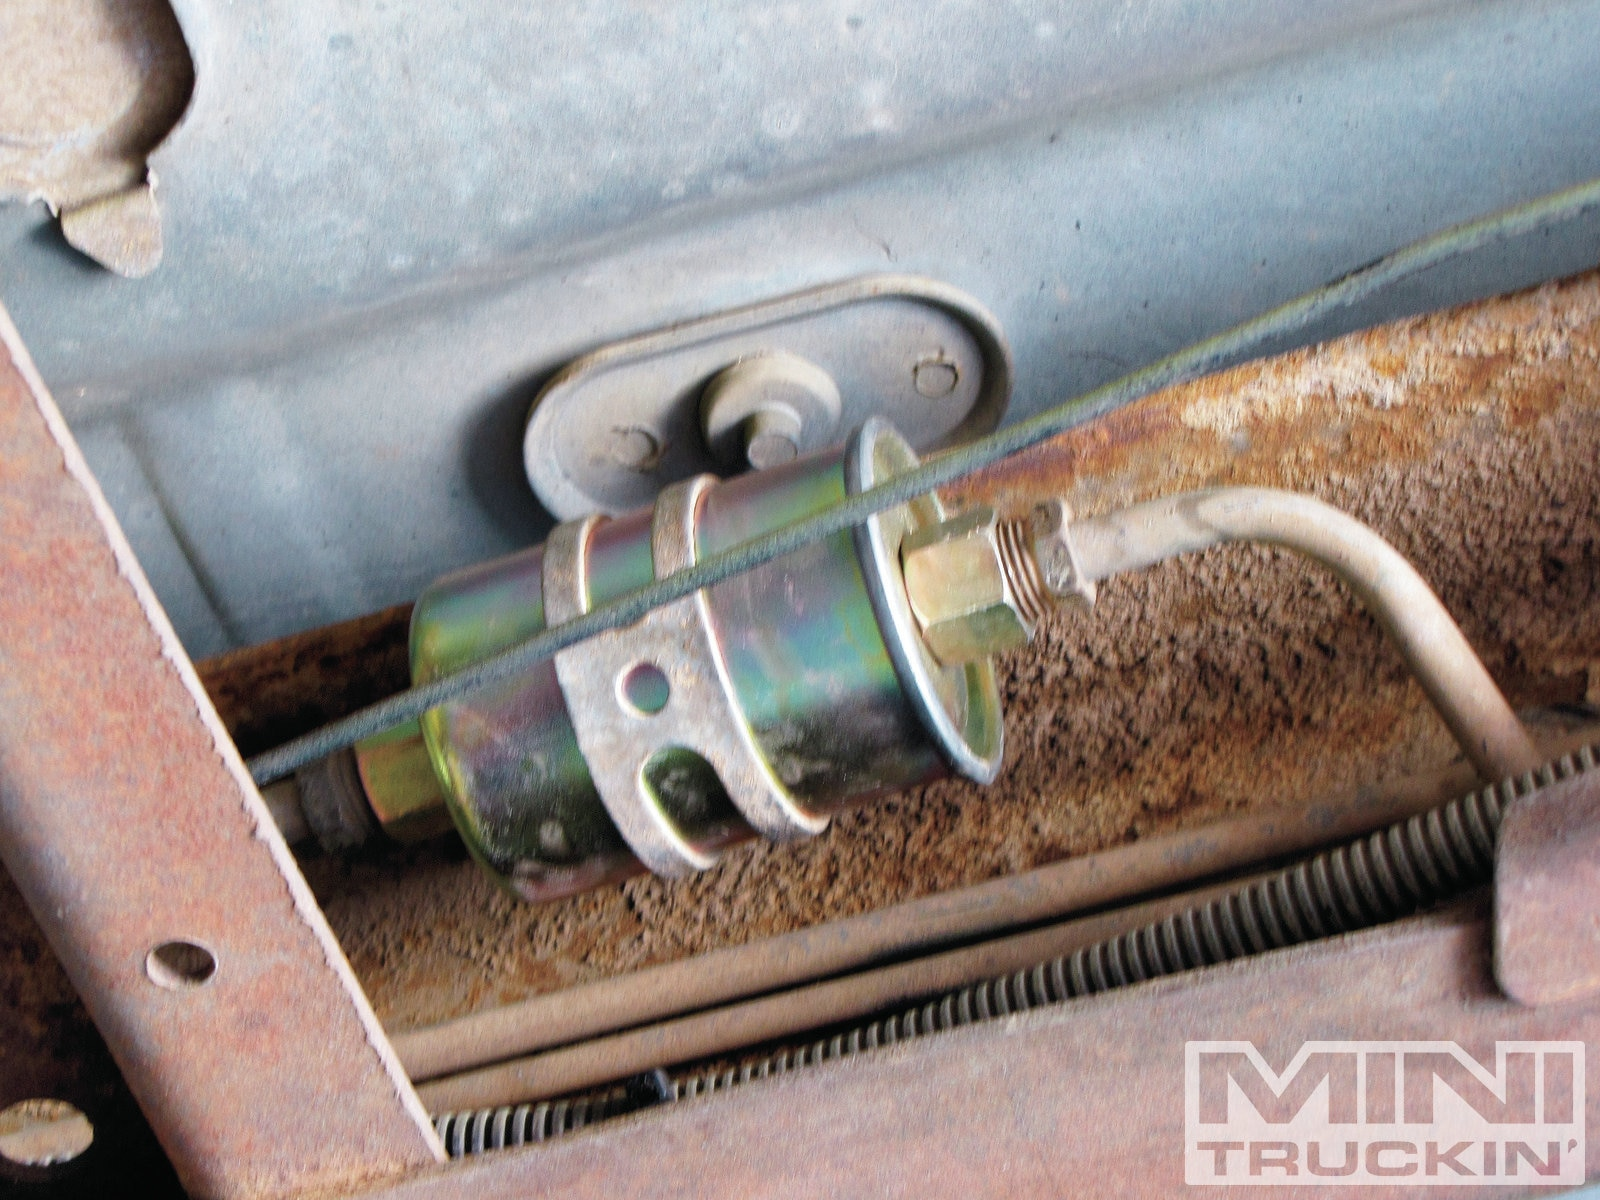 lmc fuel tank in a 1989 chevy s10 built like a tank photo 99 chevy s10 fuel filter 89 s10 fuel filter location #8